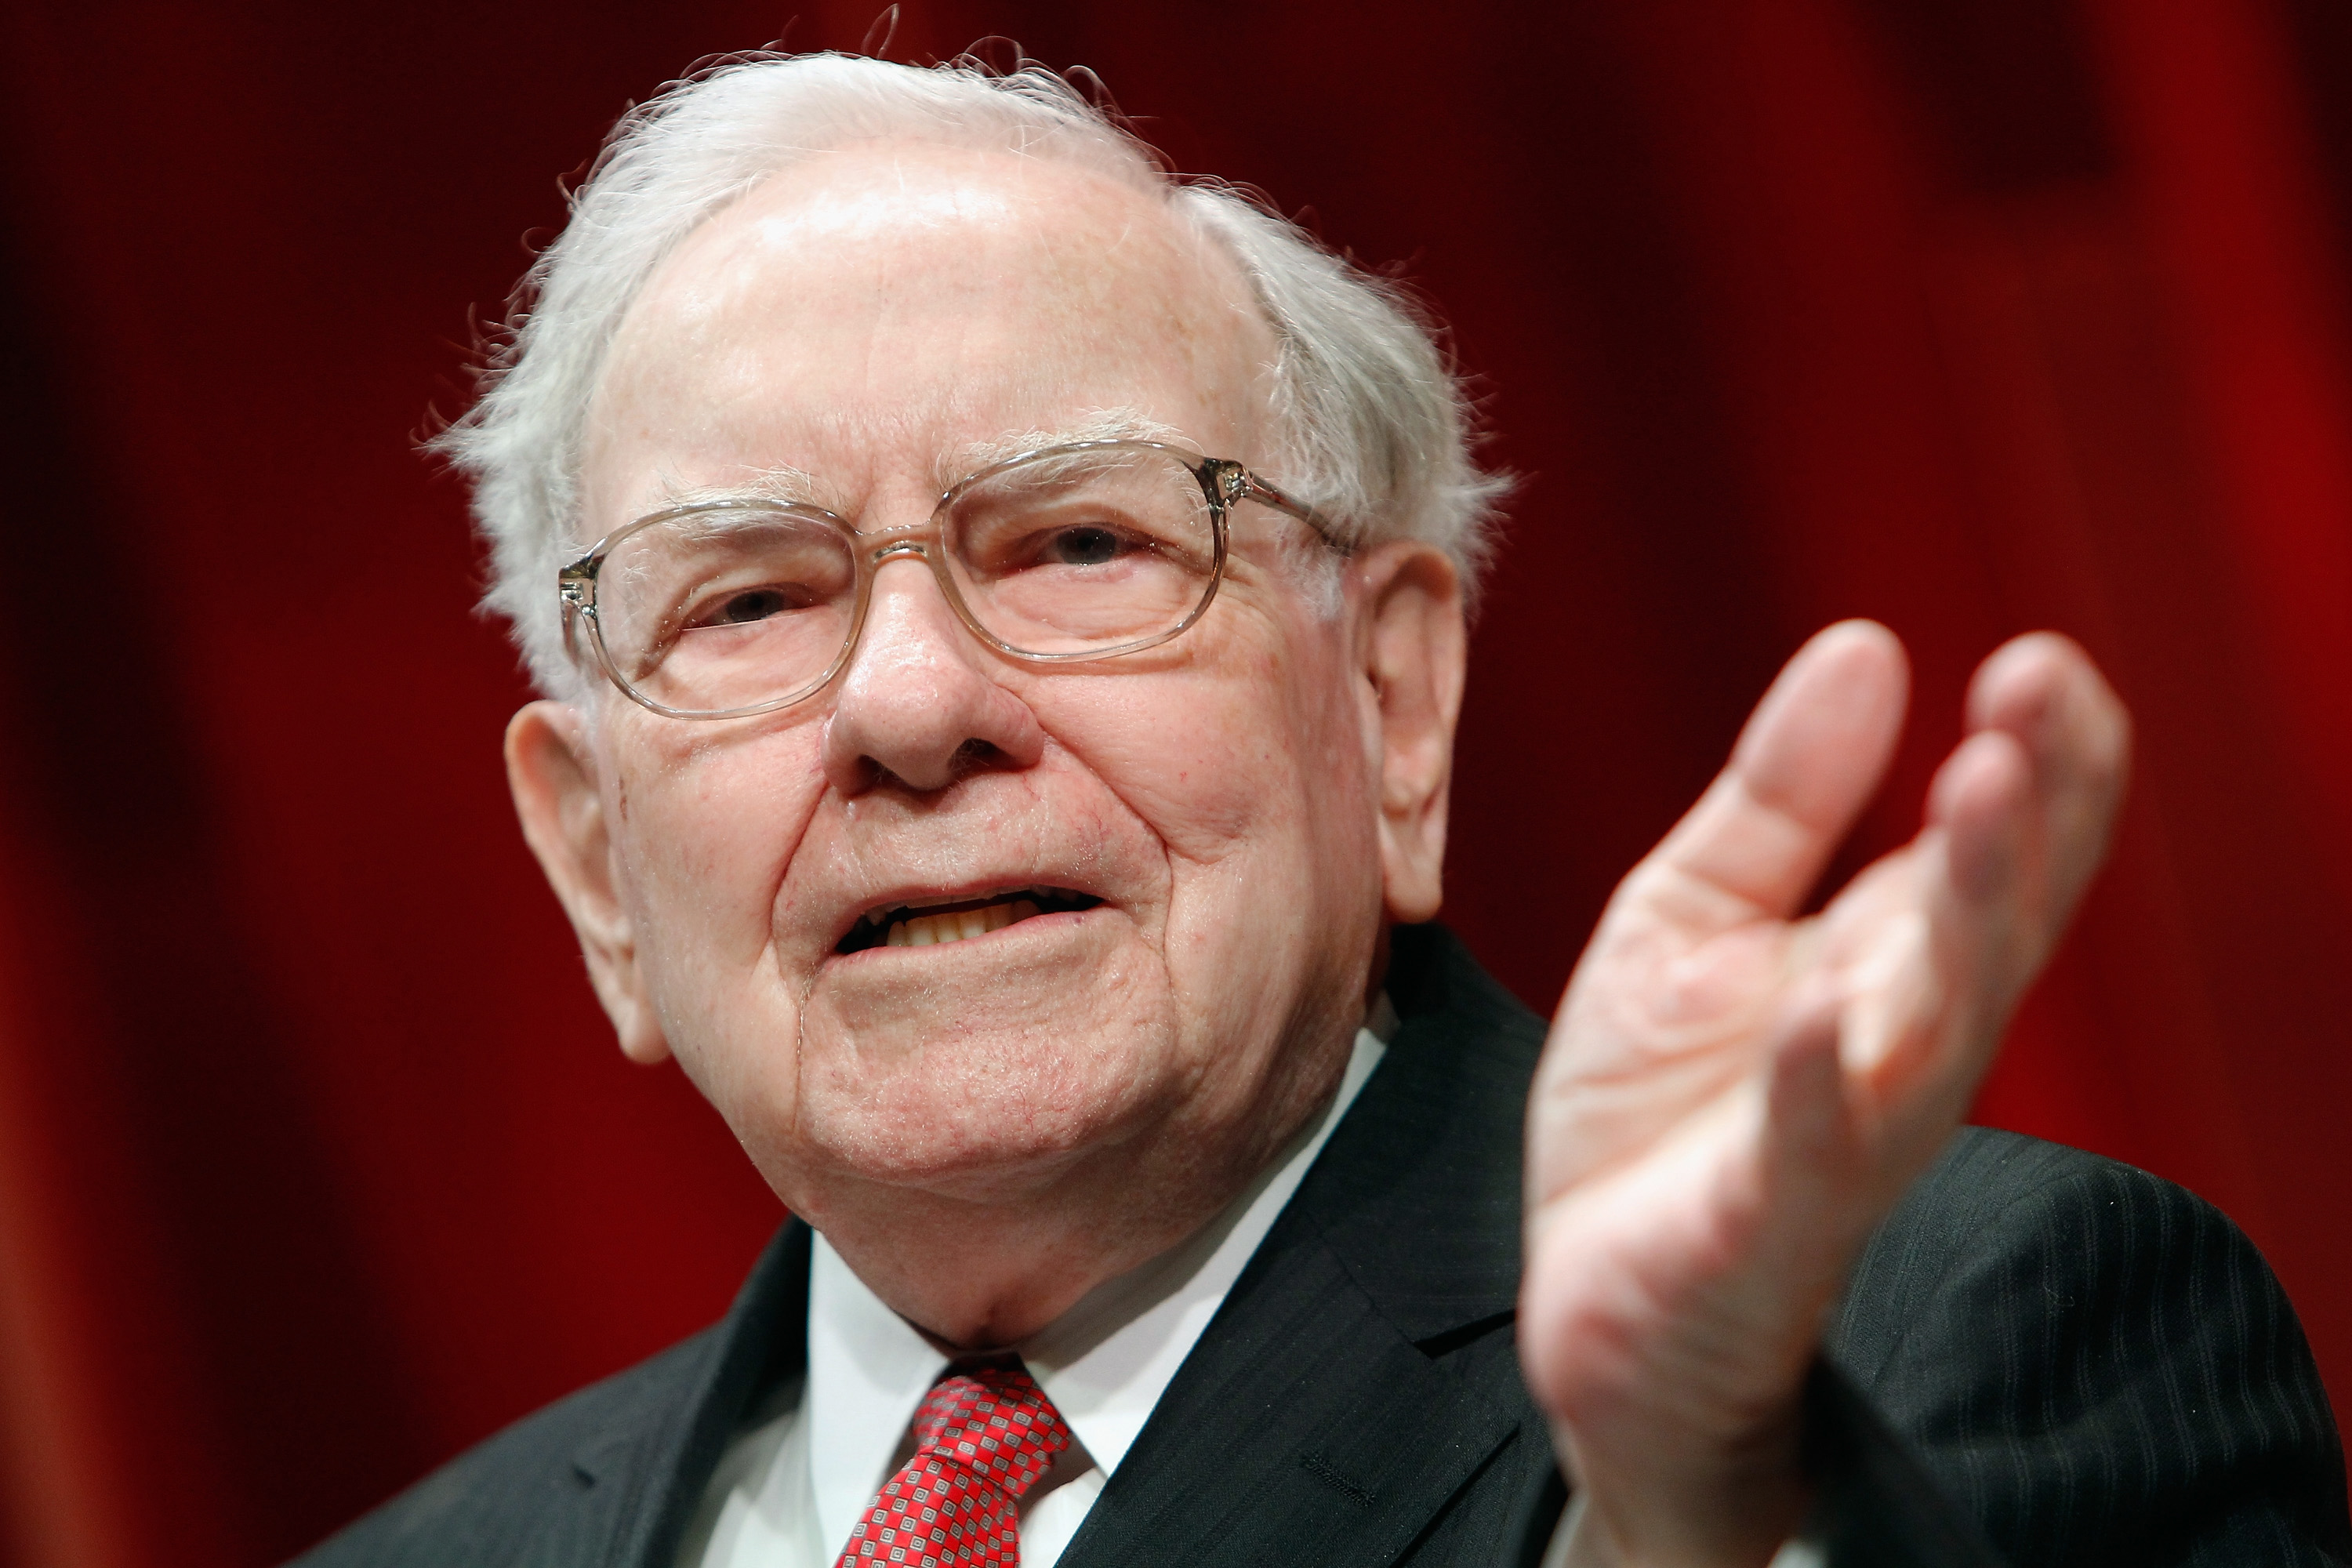 Why Warren Buffett Snapped Up Apple Stock (AAPL) | Investing | US News